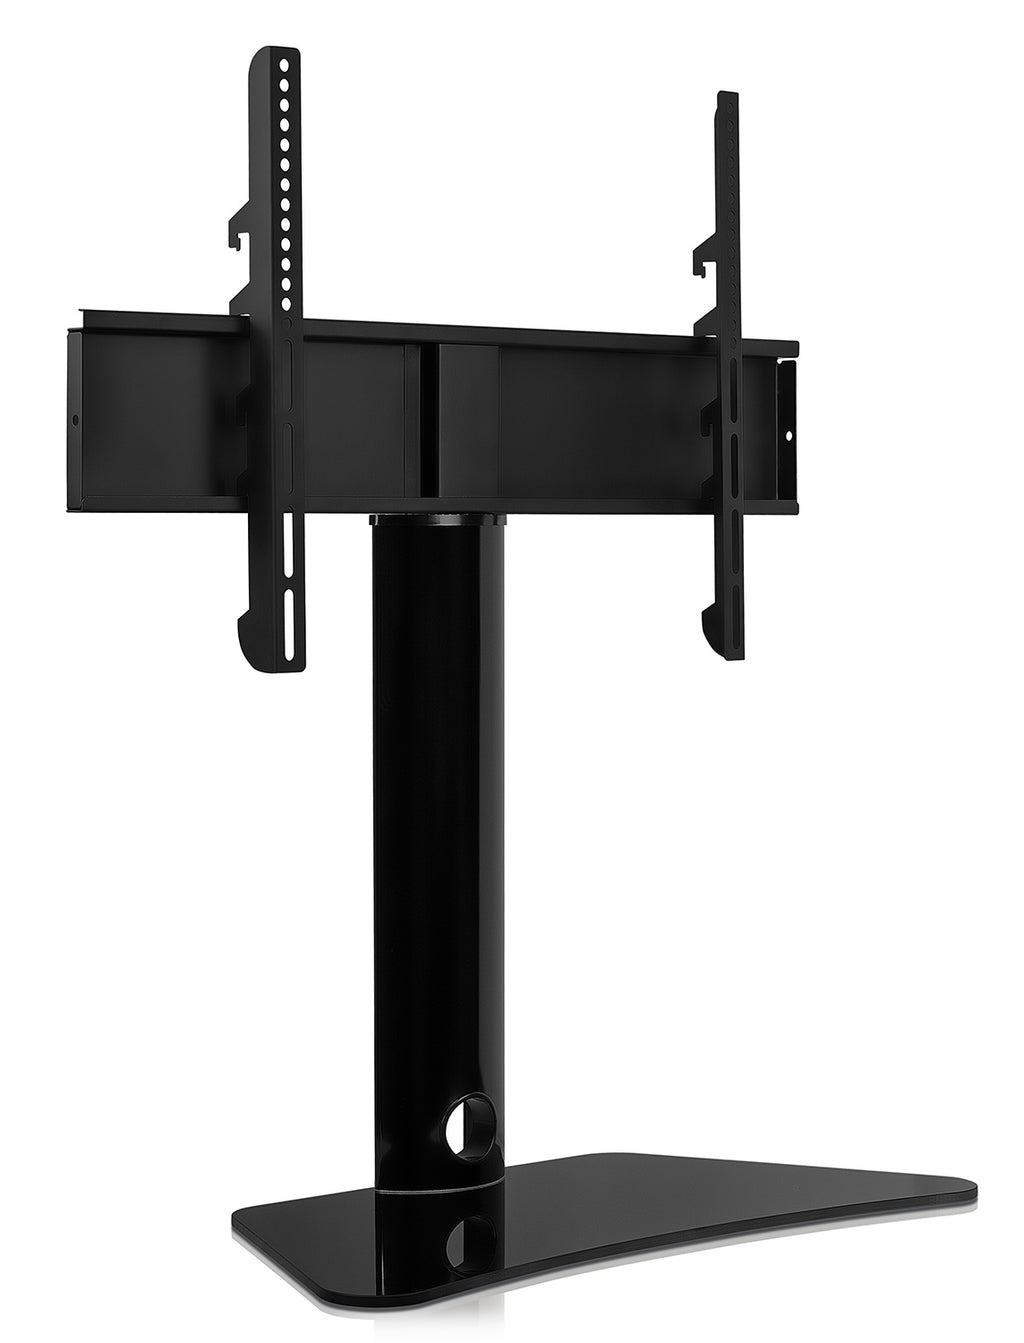 Mount-It! Universal Tabletop TV Stand & AV Media Glass Shelf - MI-844 - Mount-It!